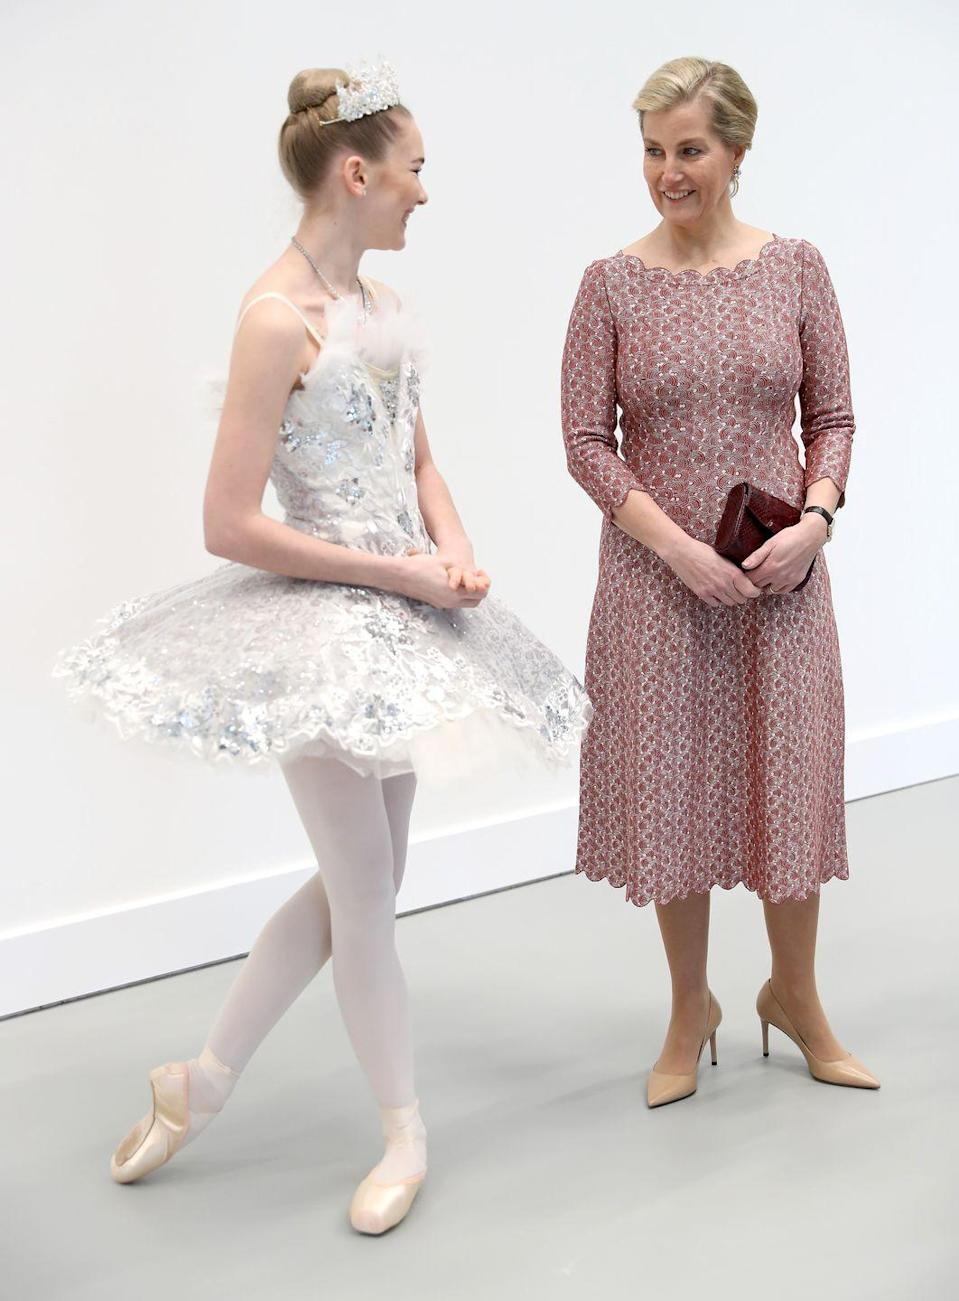 <p>In London, the Countess stunned in a red and white lace-patterned dress with a scalloped neckline. She wore this elegant look to open the Countess of Wessex Studios at the Central School of Ballet's new location, pairing the dress with a ballerina-inspired updo. </p>